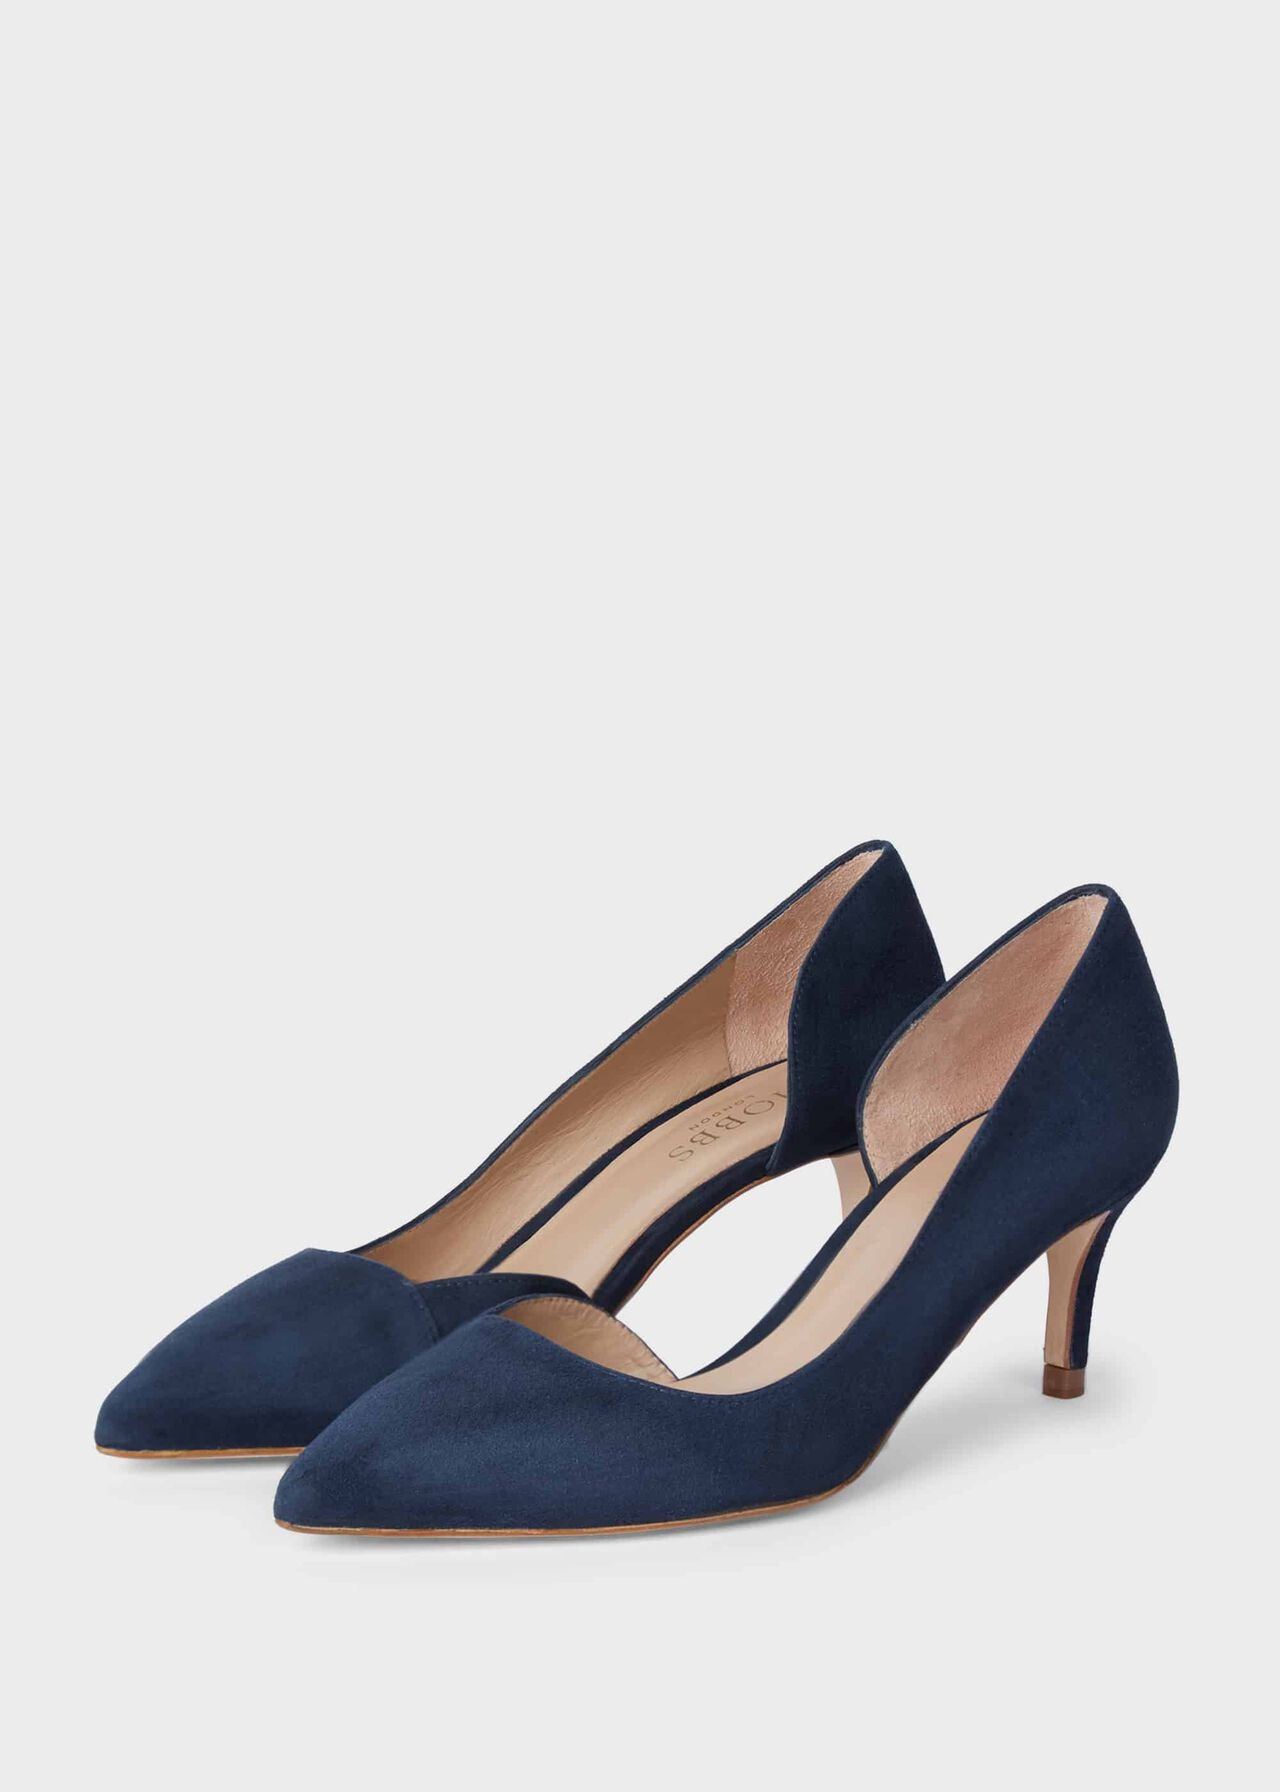 Selena Suede D'Orsay Court Shoes Navy